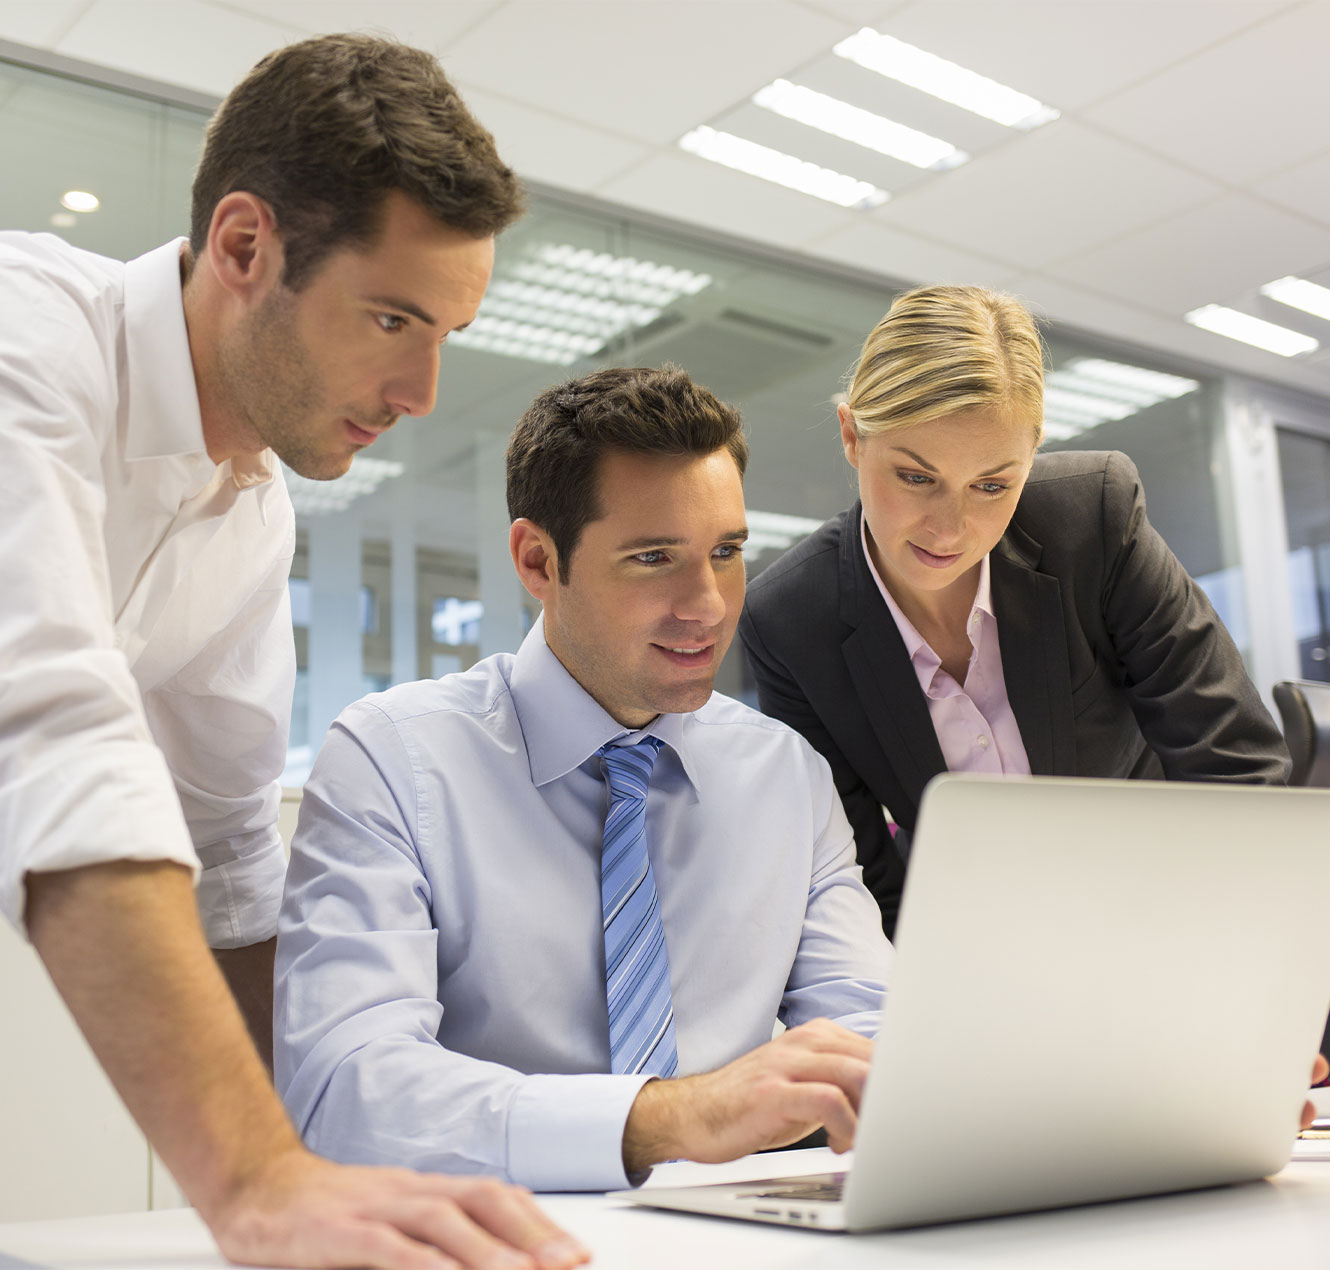 Three colleagues looking at laptop screen